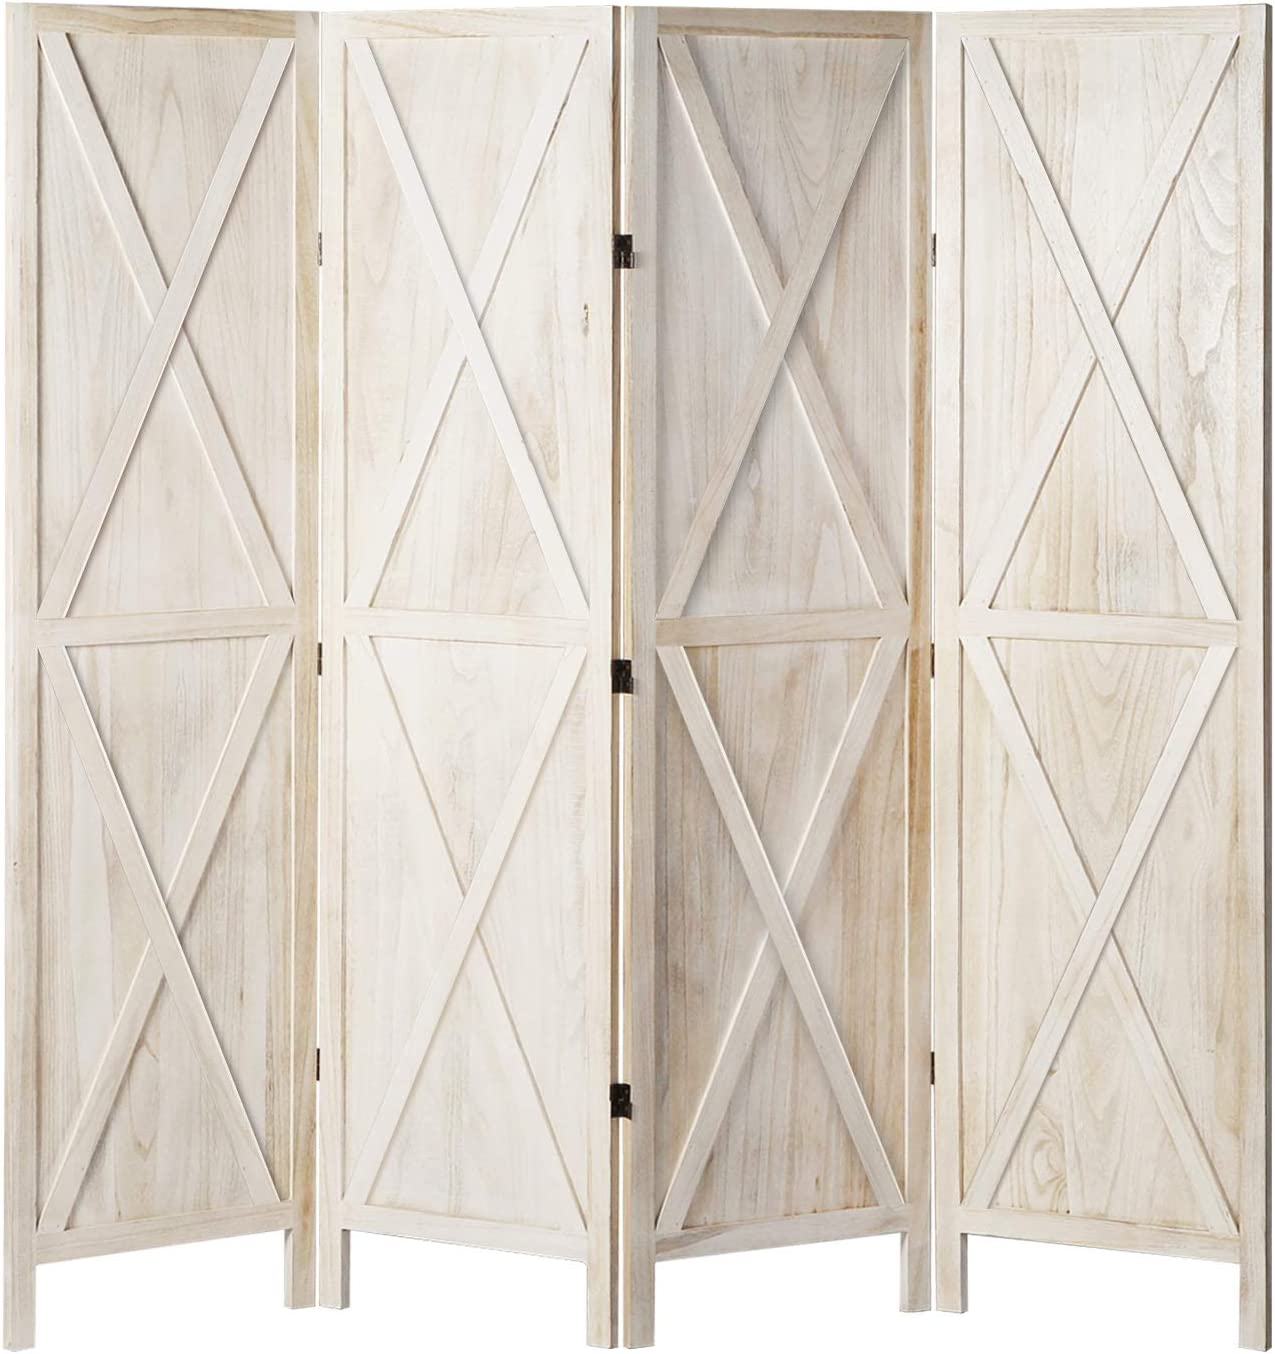 Elegantly Decorated Folding Room dividers,White 4 Living Separator Screen Panel with a Curved Base and Ceiling